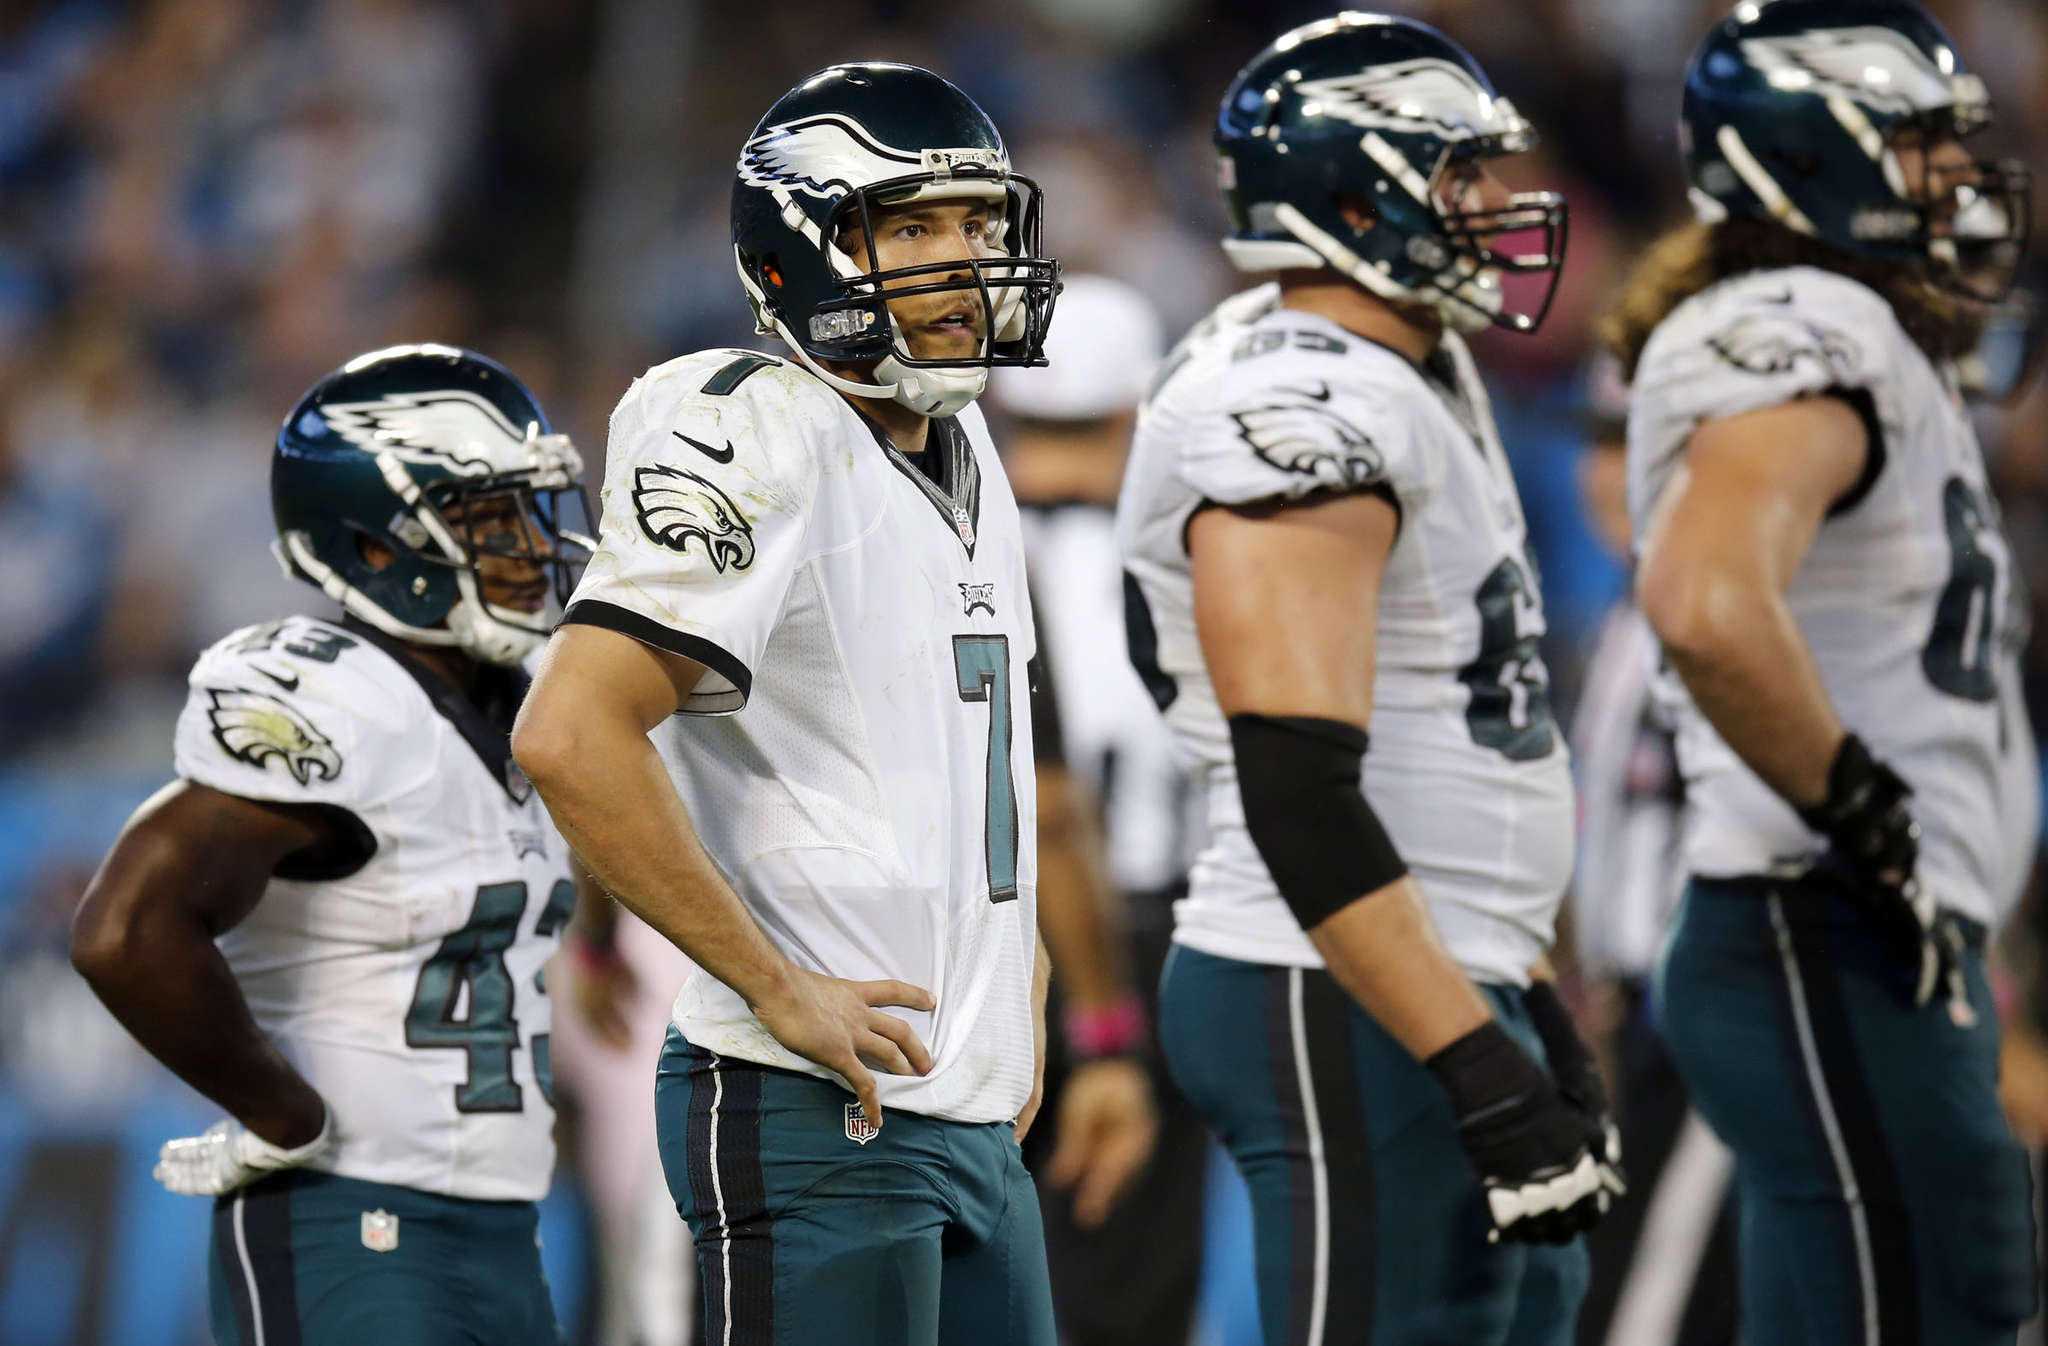 YONG KIM / STAFF PHOTOGRAPHER Sam Bradford certainly has not lived up to the advance billing he got from Chip Kelly.